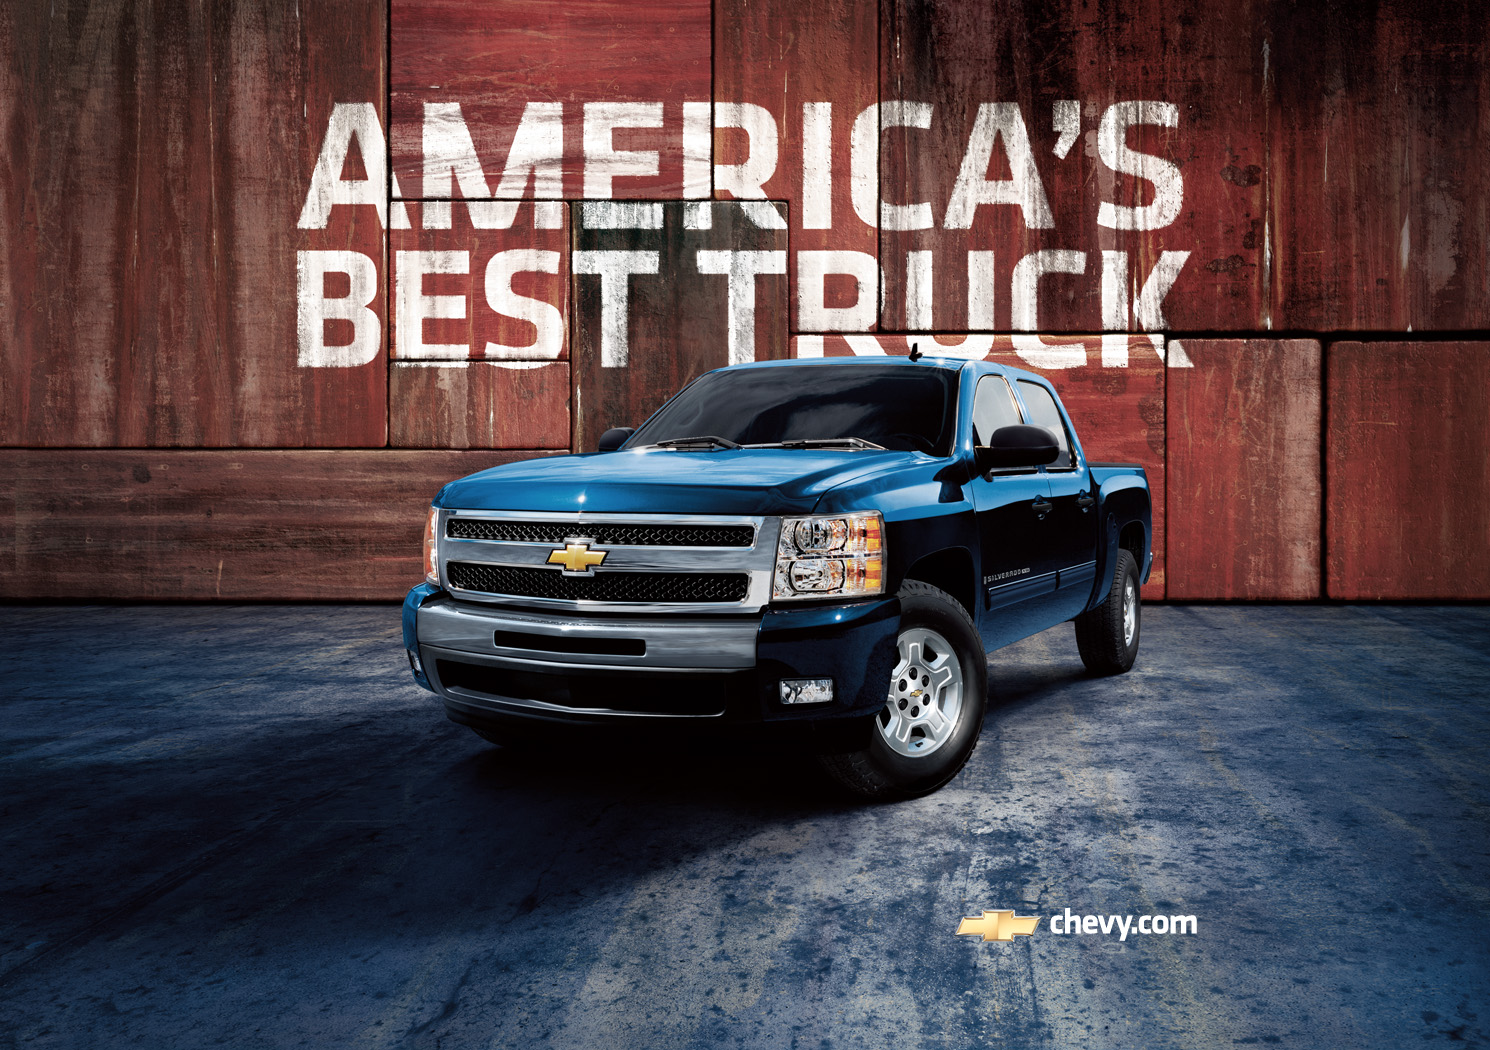 Chevrolet Silverado Wallpapers 1490x1050